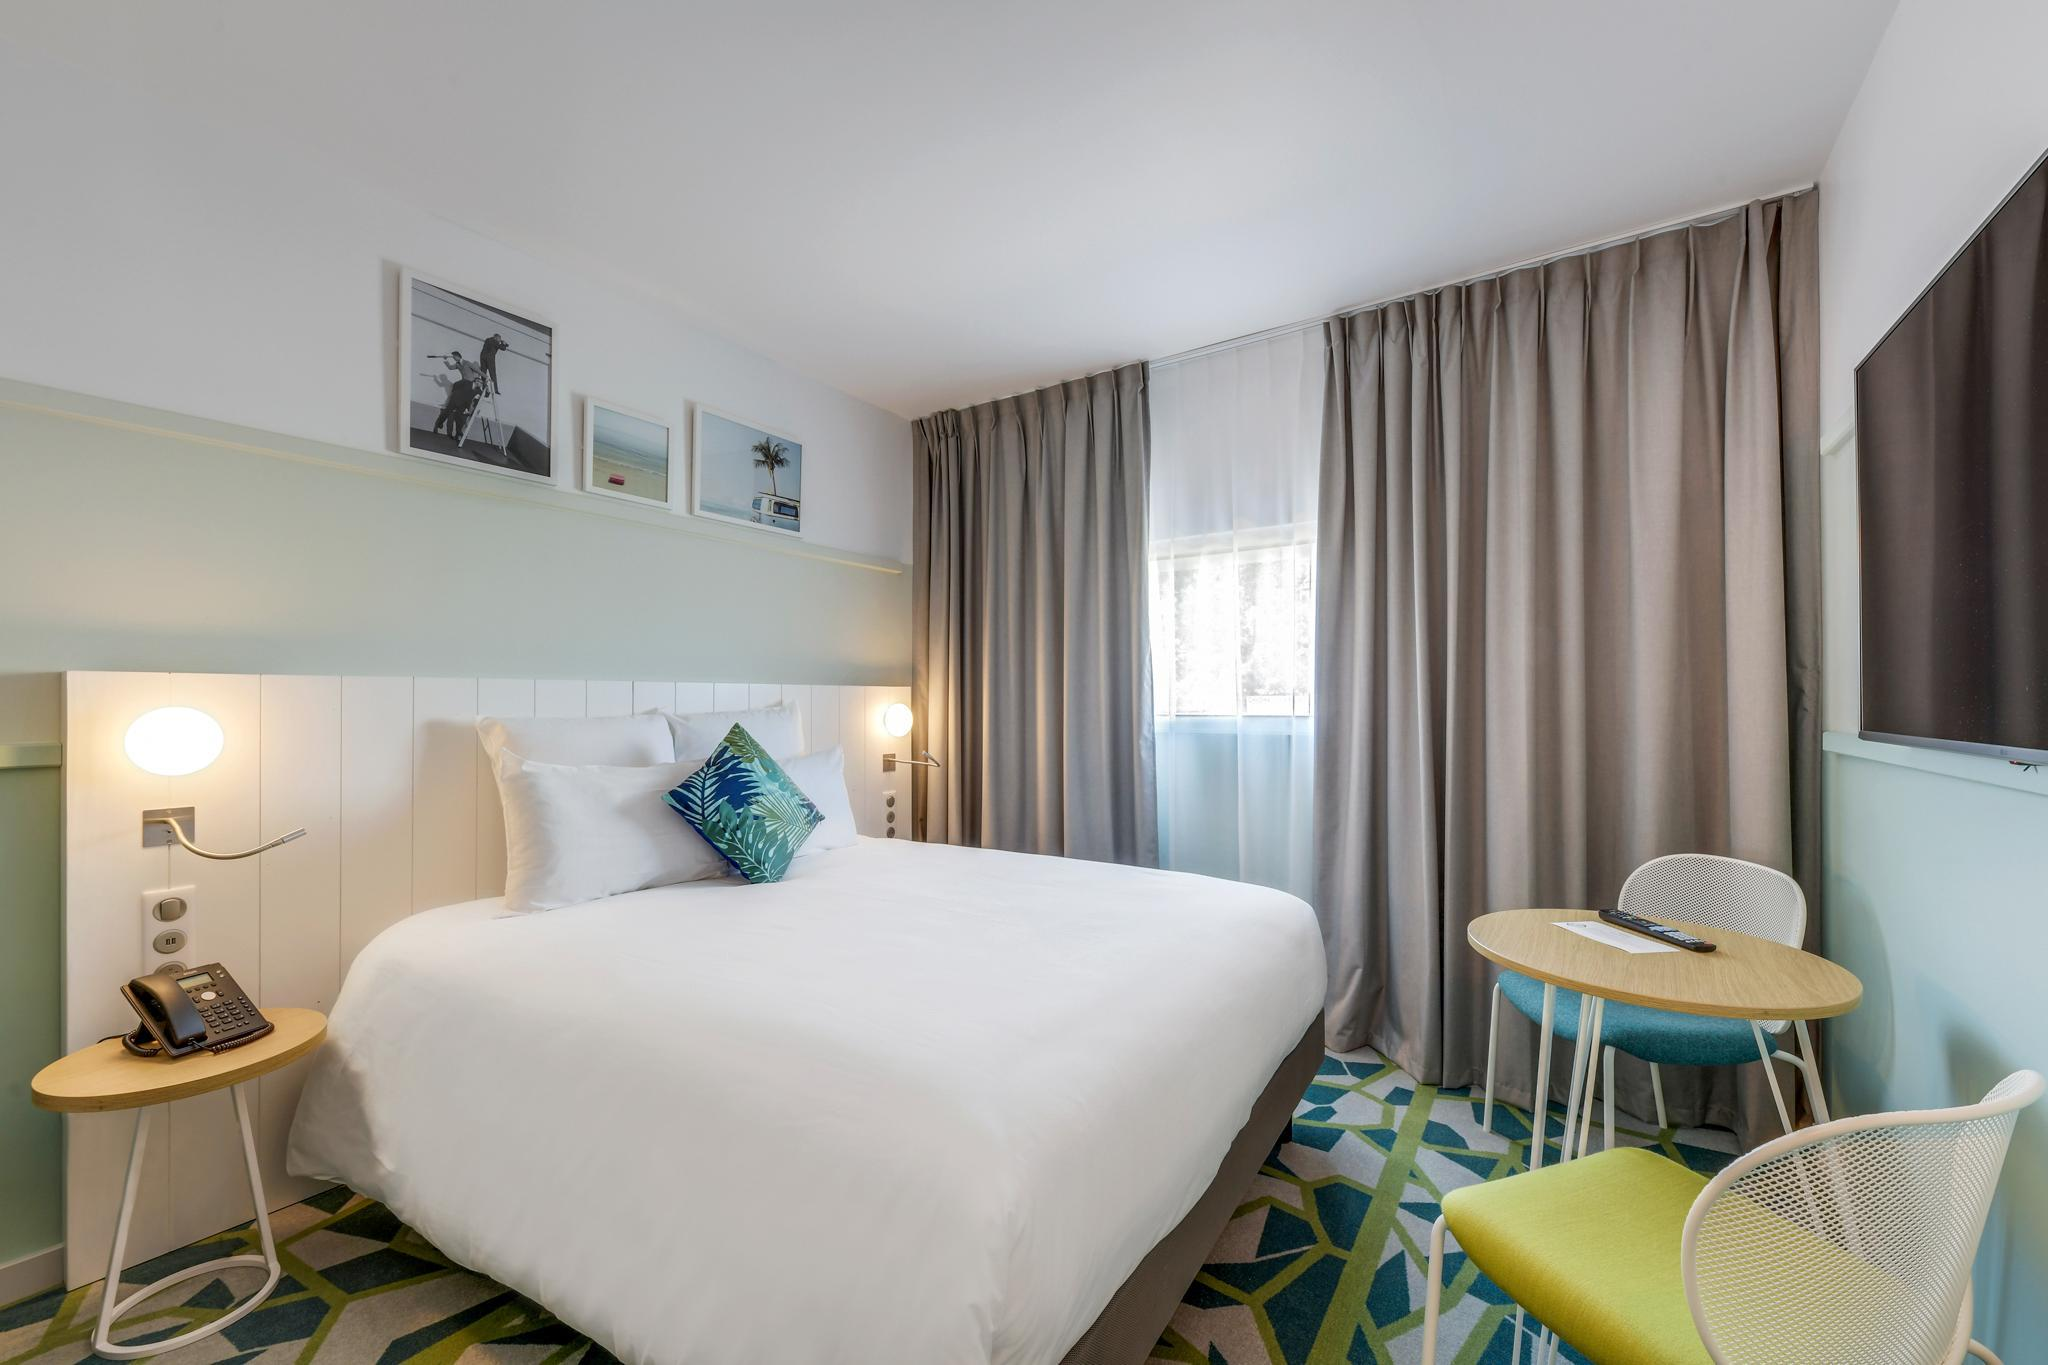 Howard Hotel Paris Orly Airport Online Booking